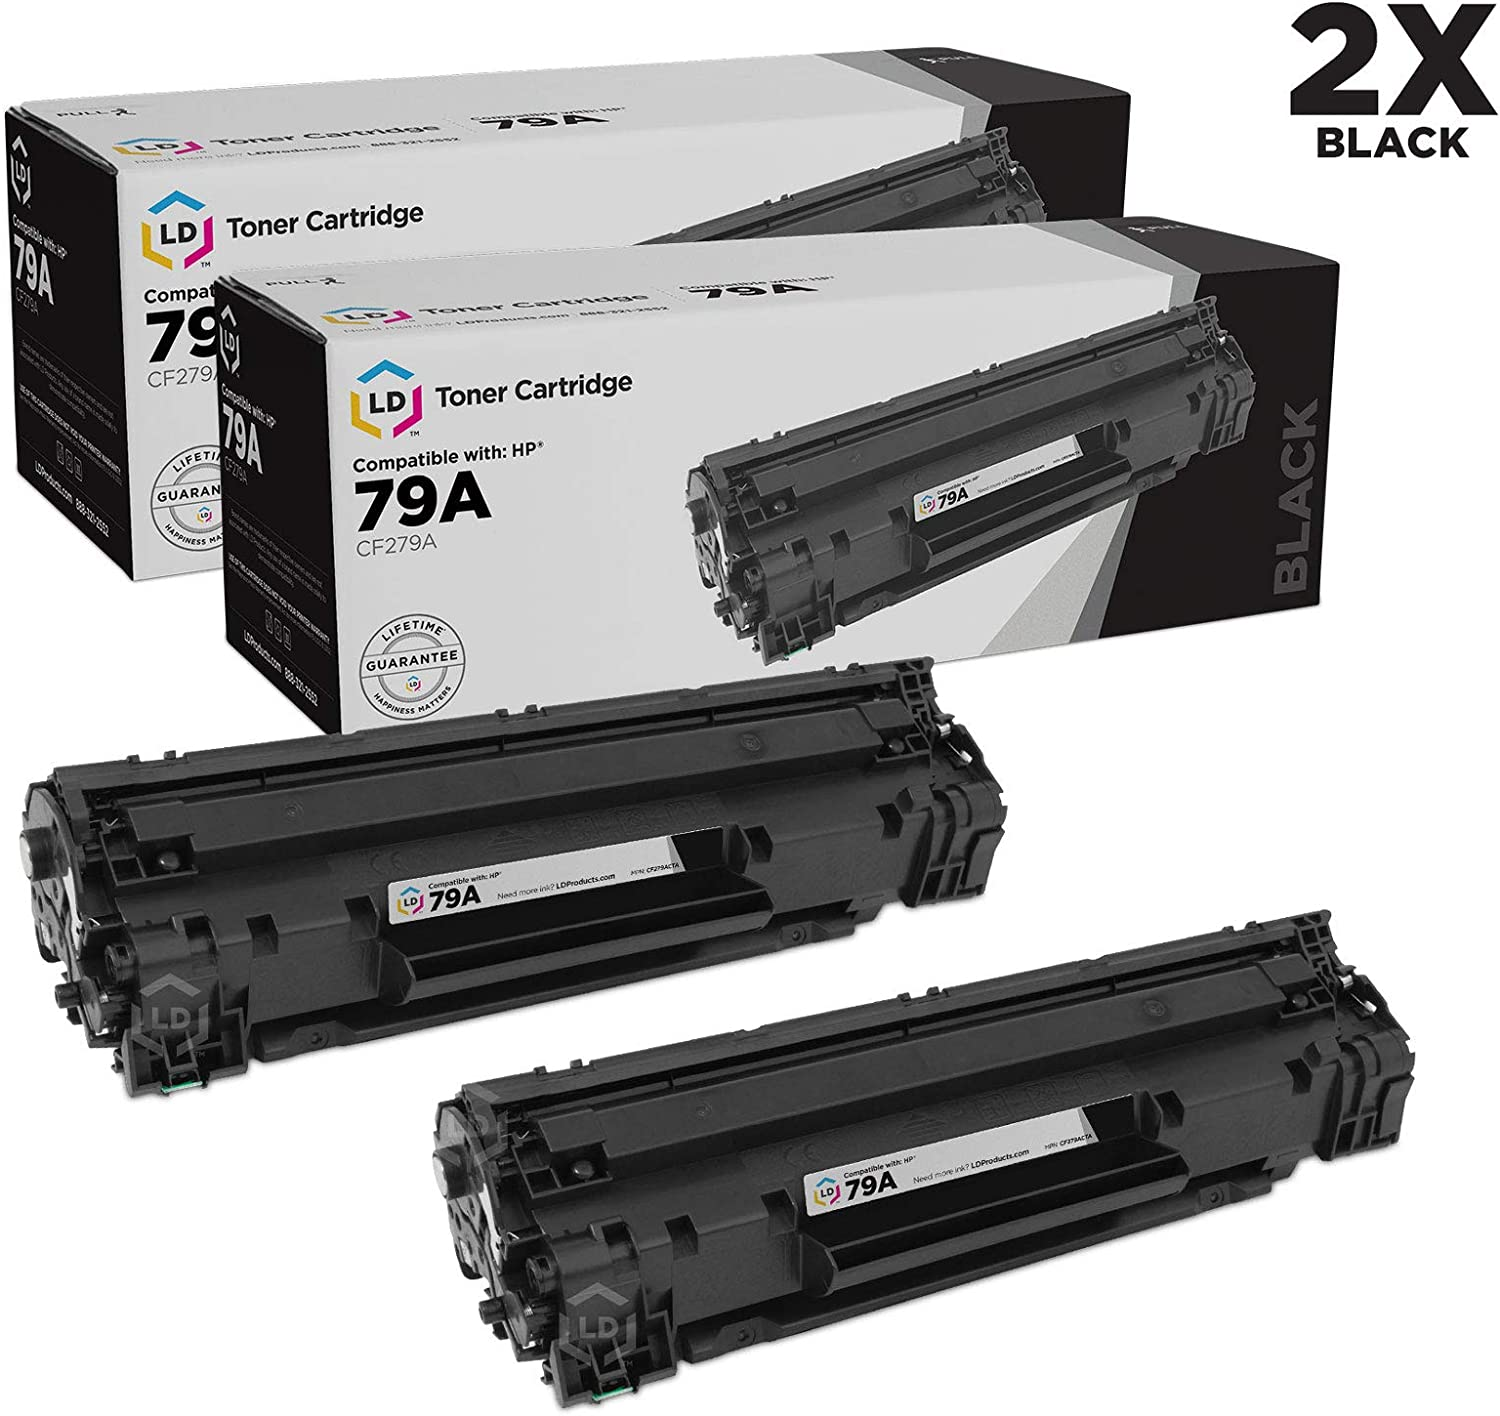 LD Compatible Toner Cartridge Replacements for HP 79A CF279A (Black, 2-Pack)